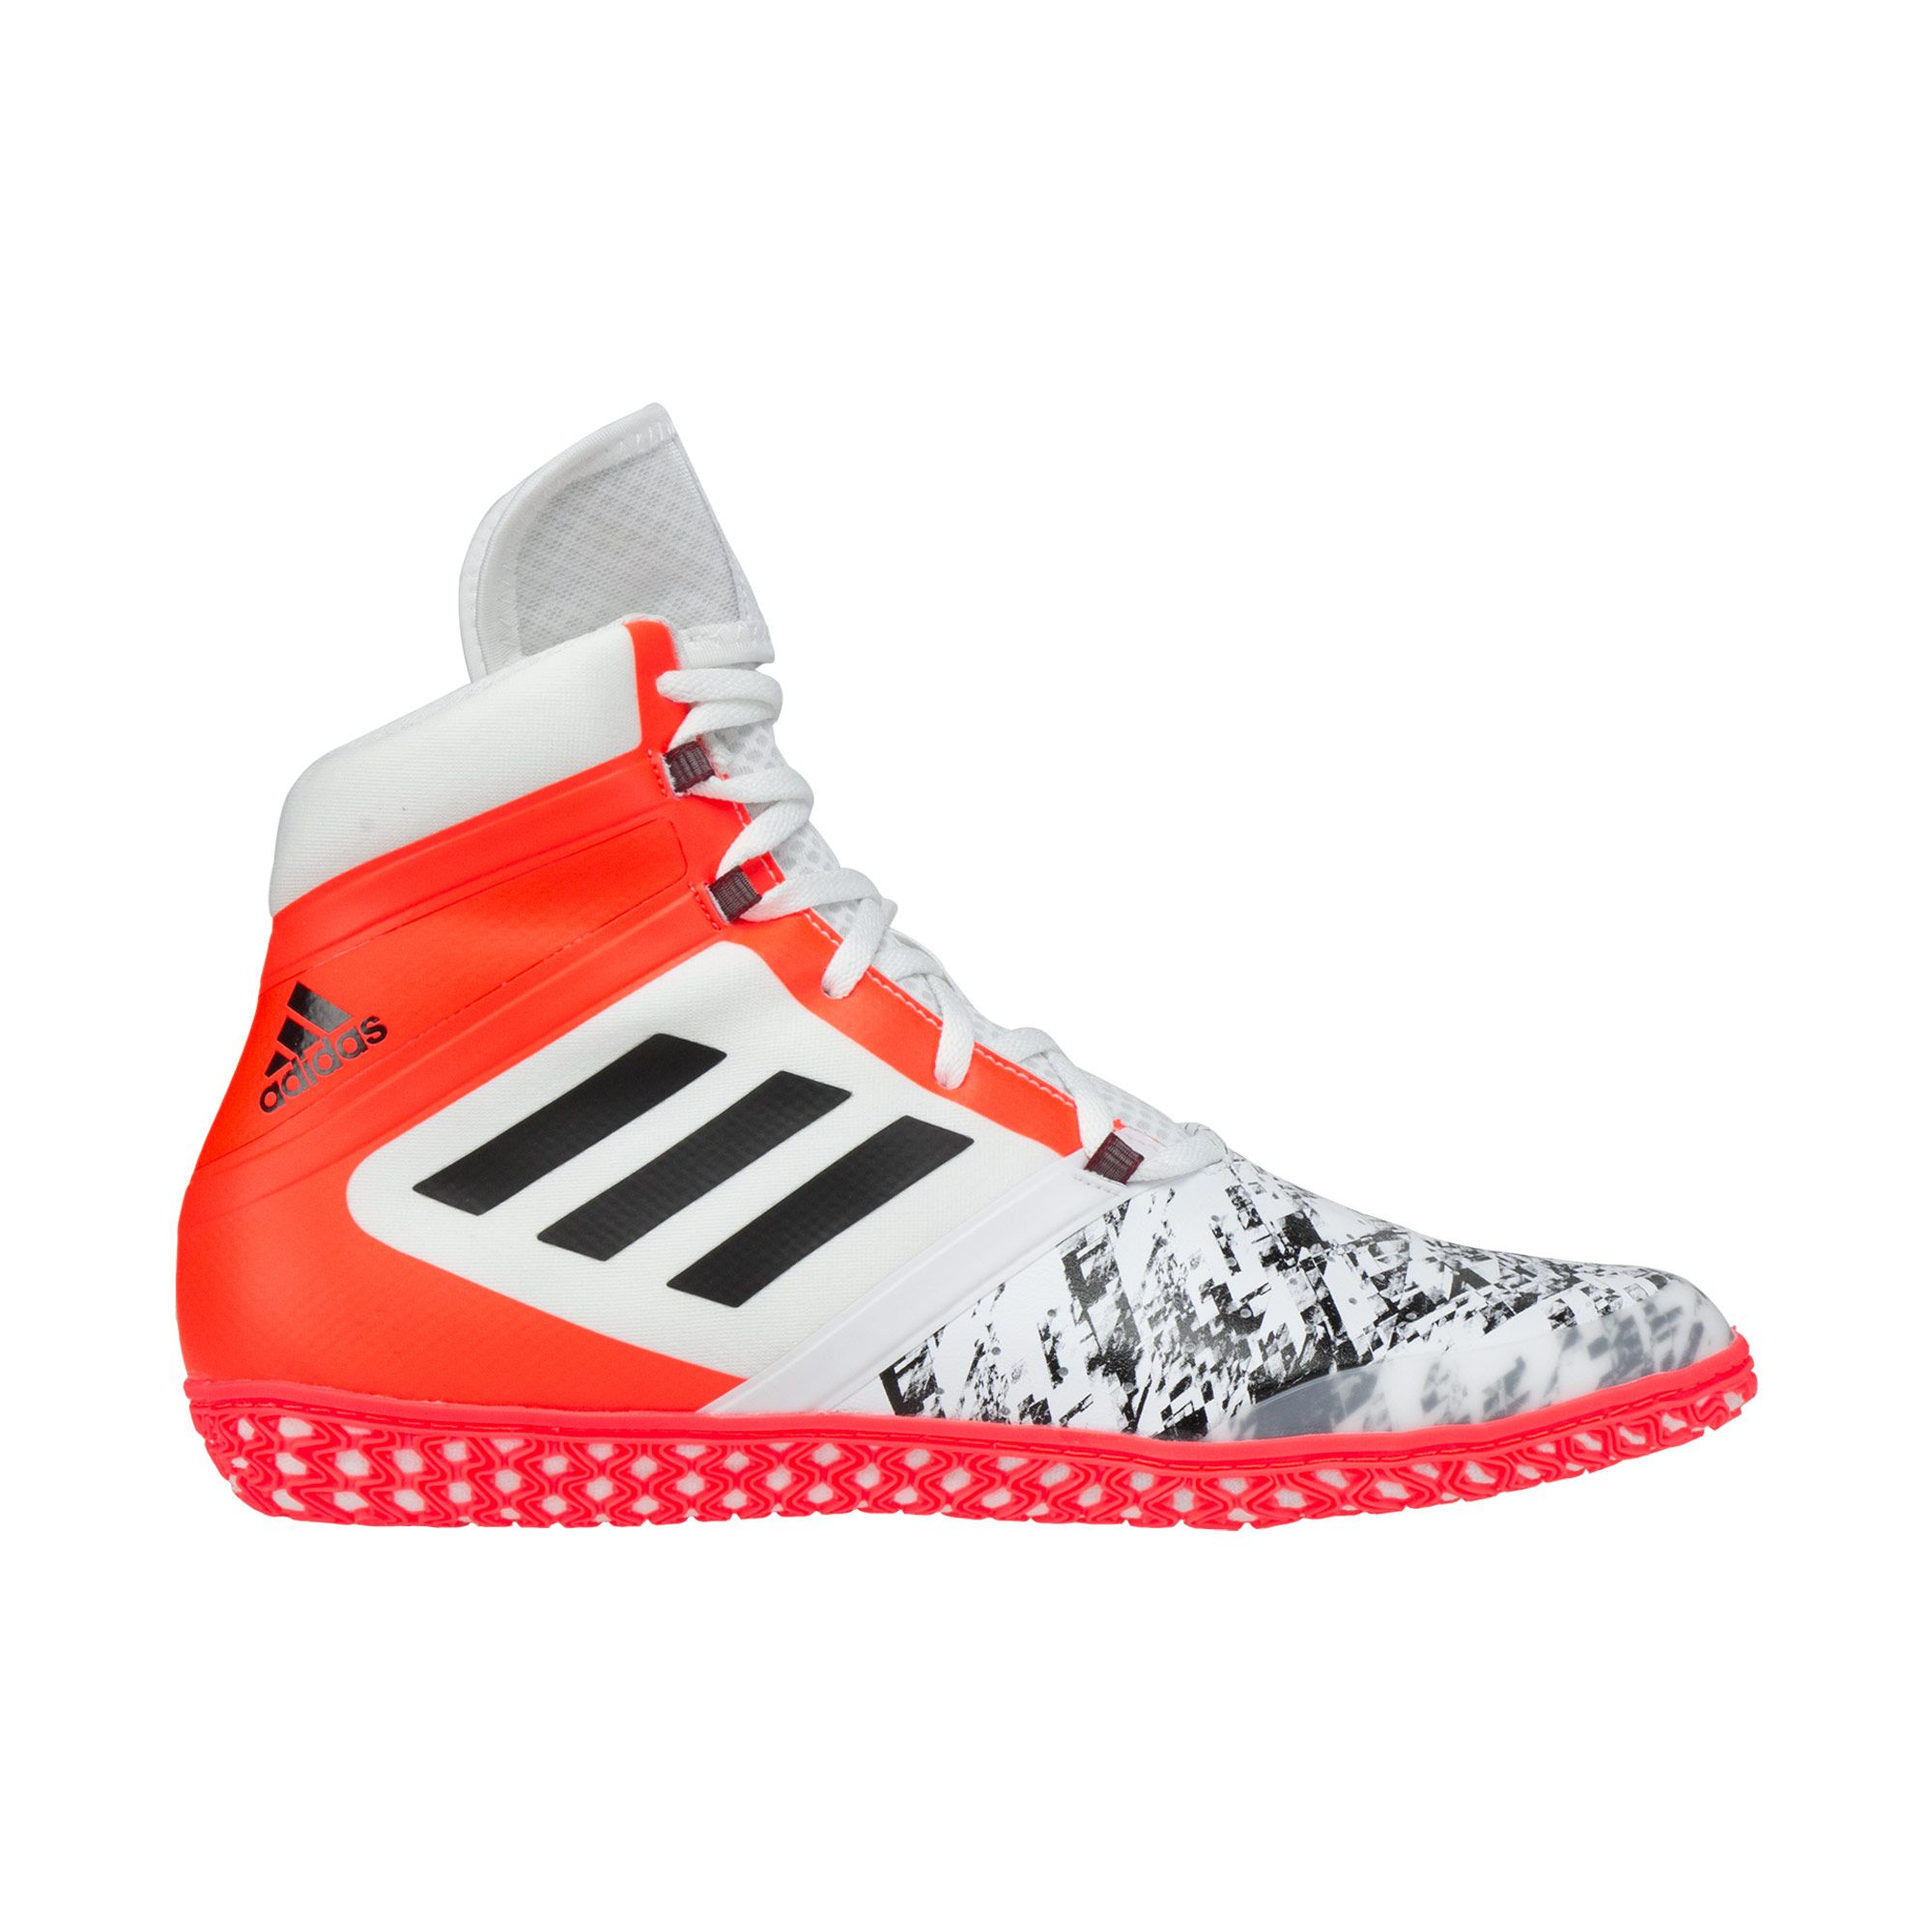 197de514c7b1 Adidas Impact White Black Orange ...